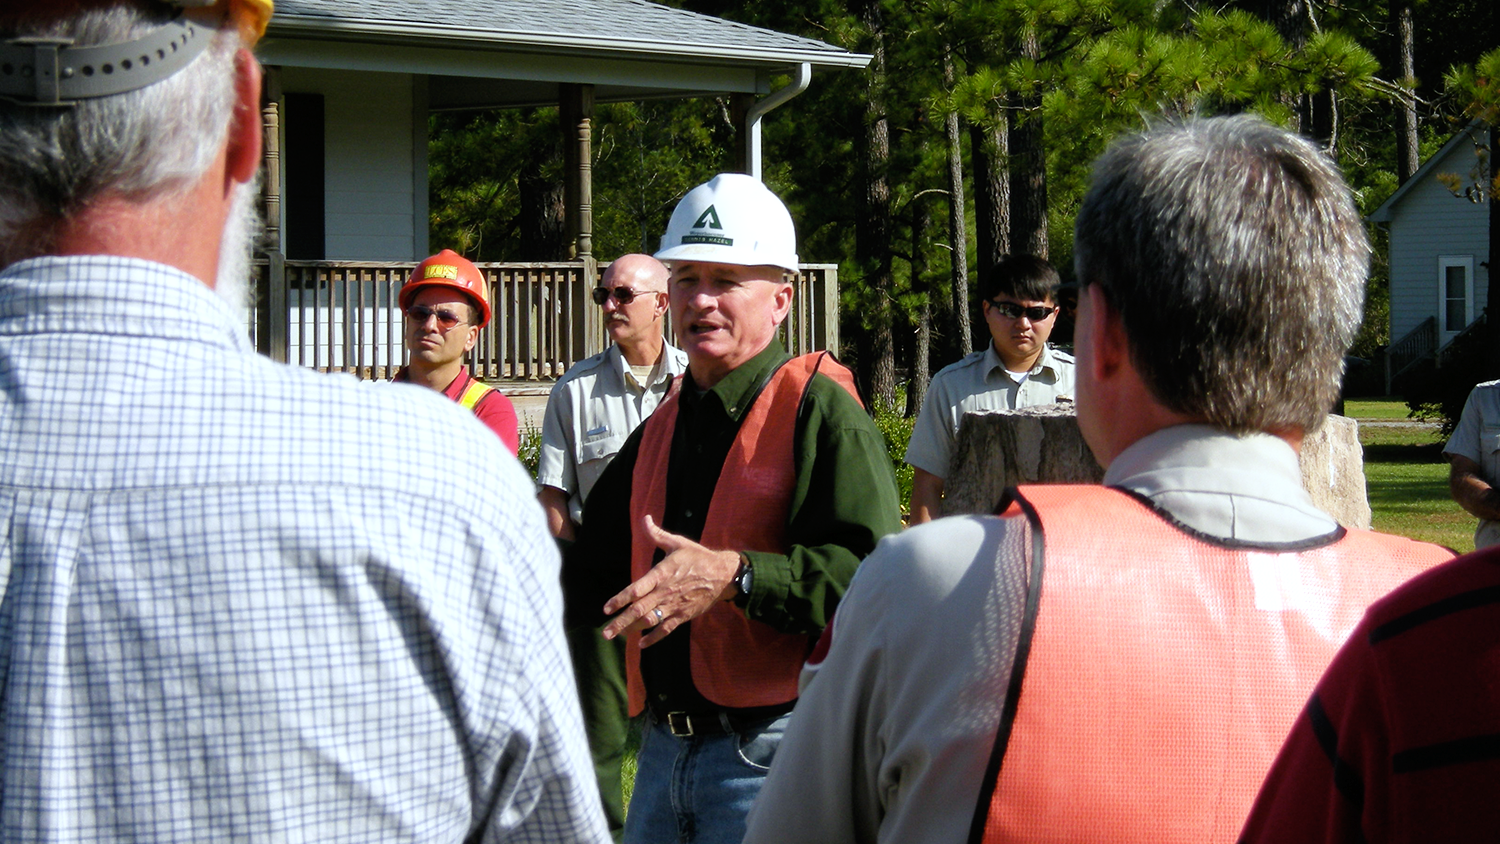 Forestry Extension program - Extension and Outreach - College of Natural Resources at NCState University